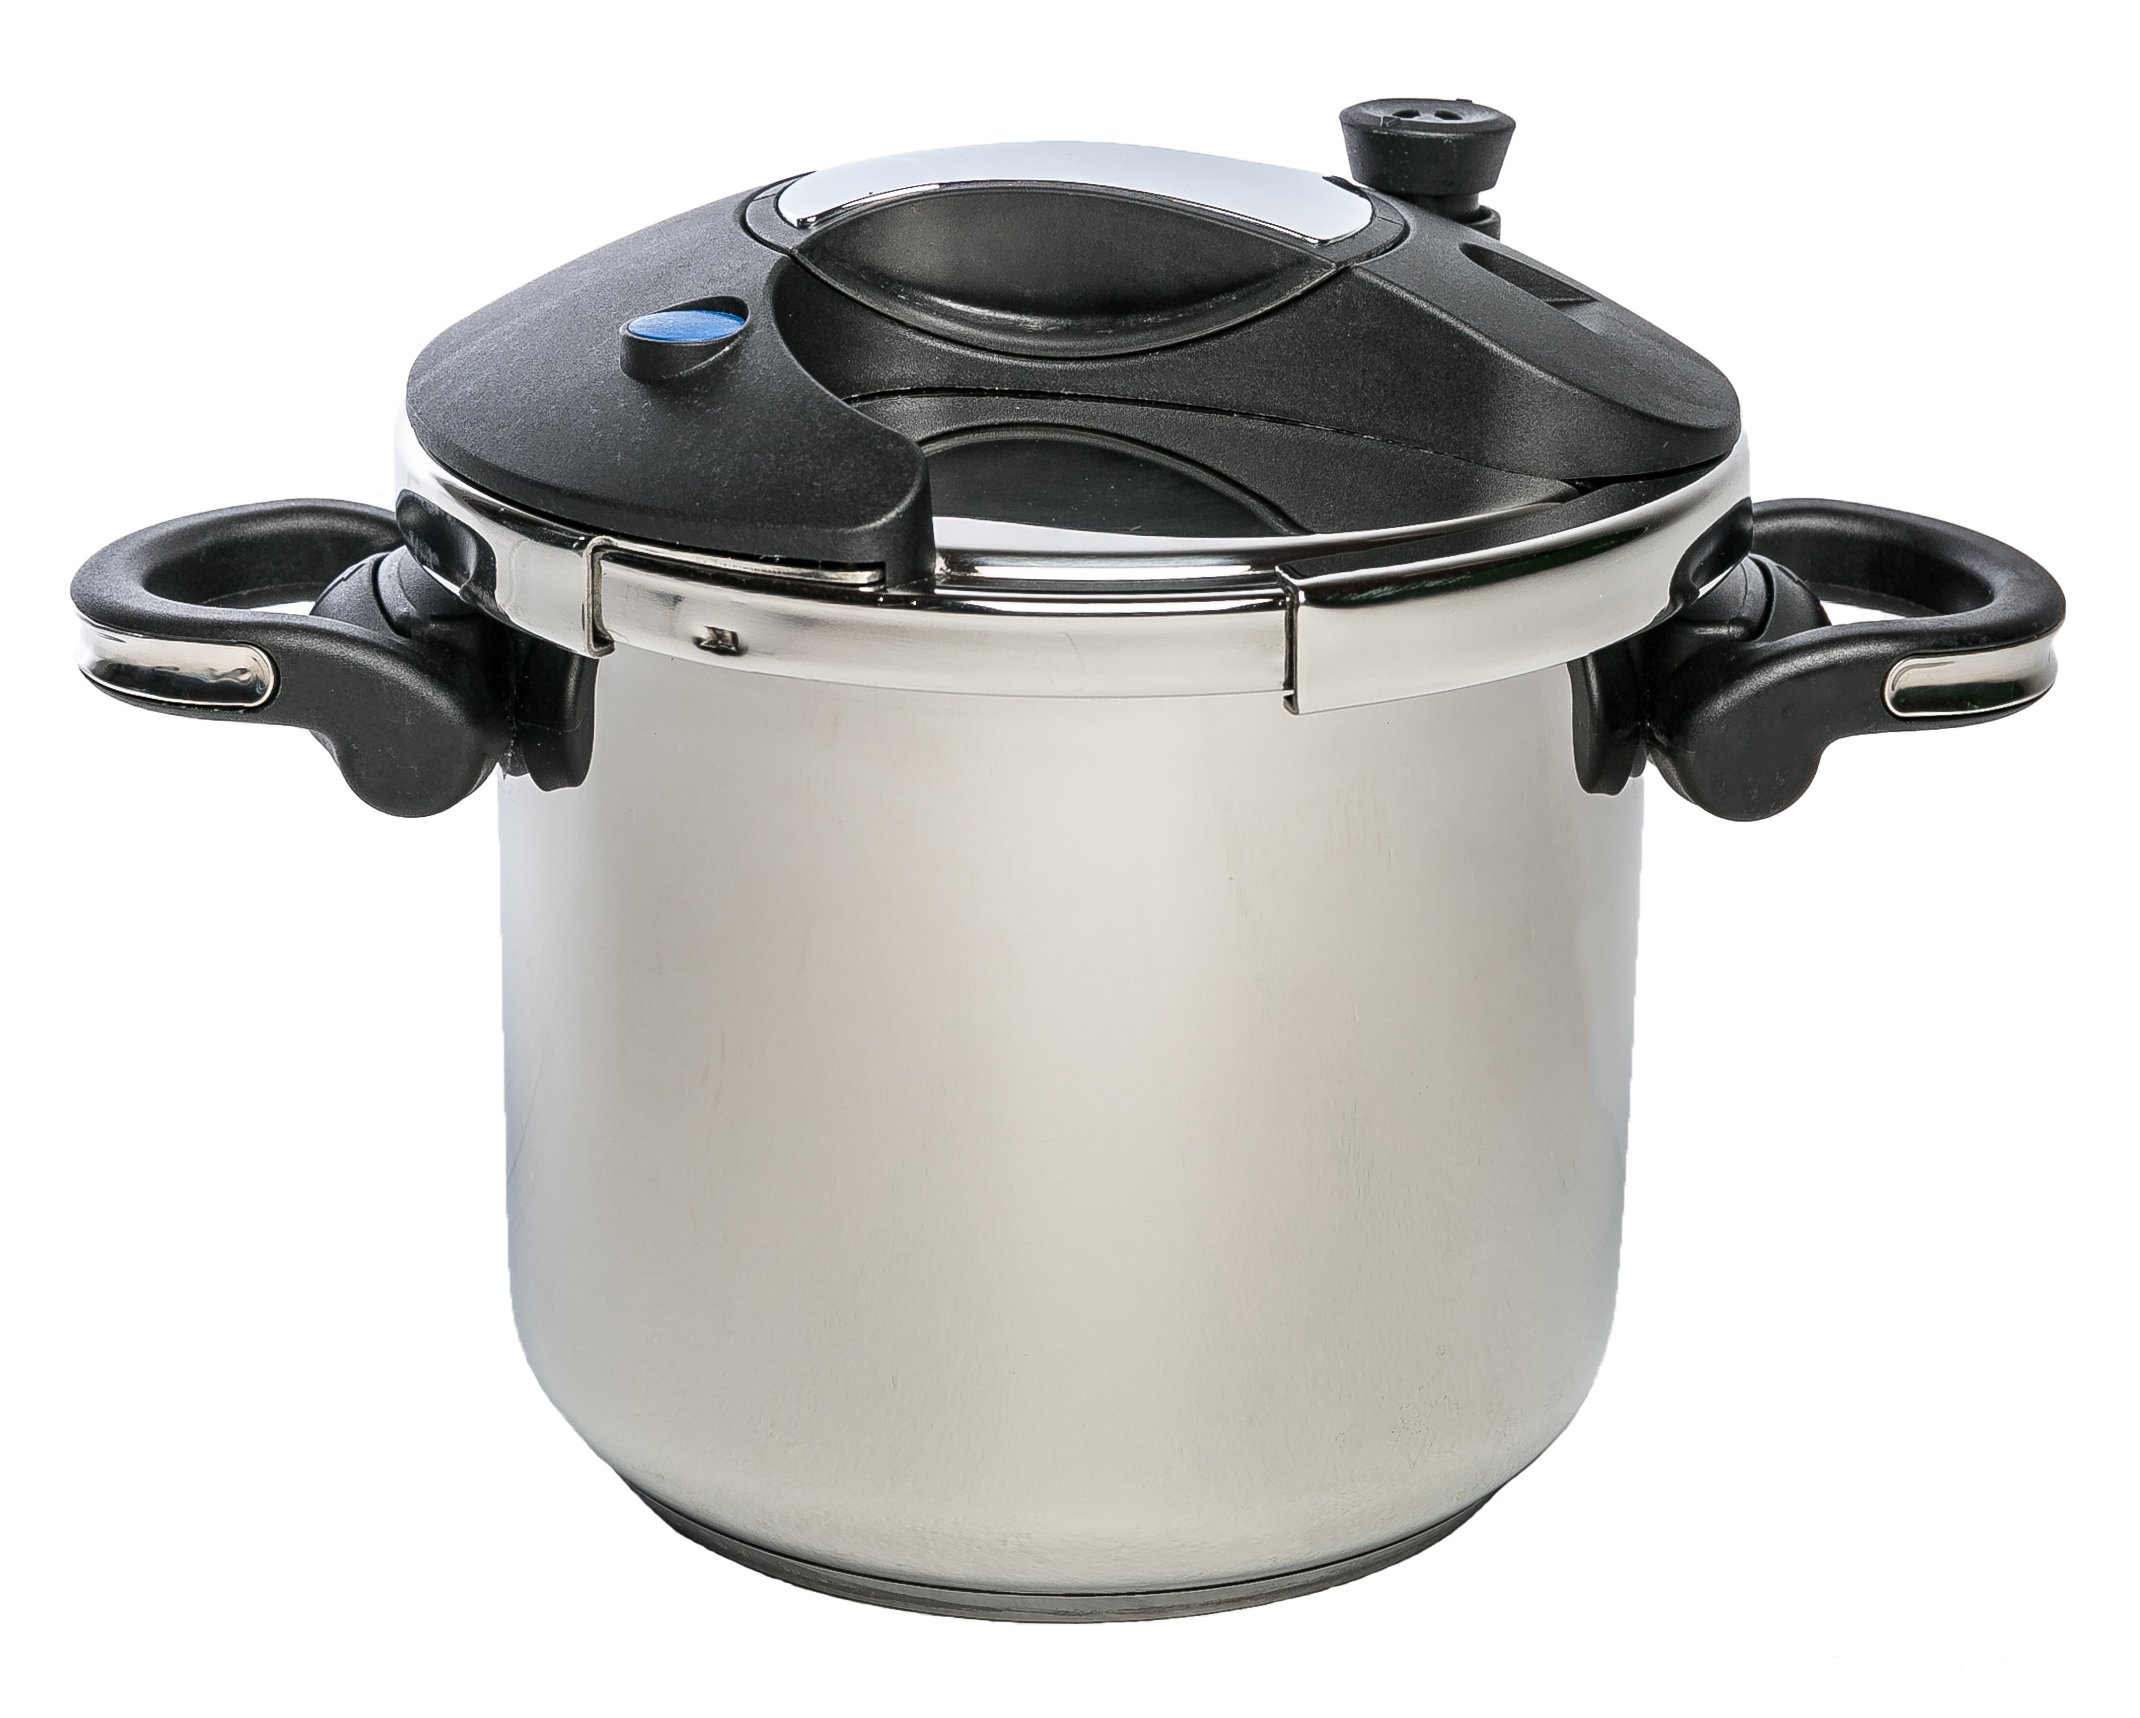 ExcelSteel 598 Professional Pressure Cooker, 7.5 QT, 18/10 Stainless Steel W/Encapsulated Base, Multiple Safety Designs to Ensure Safe Use